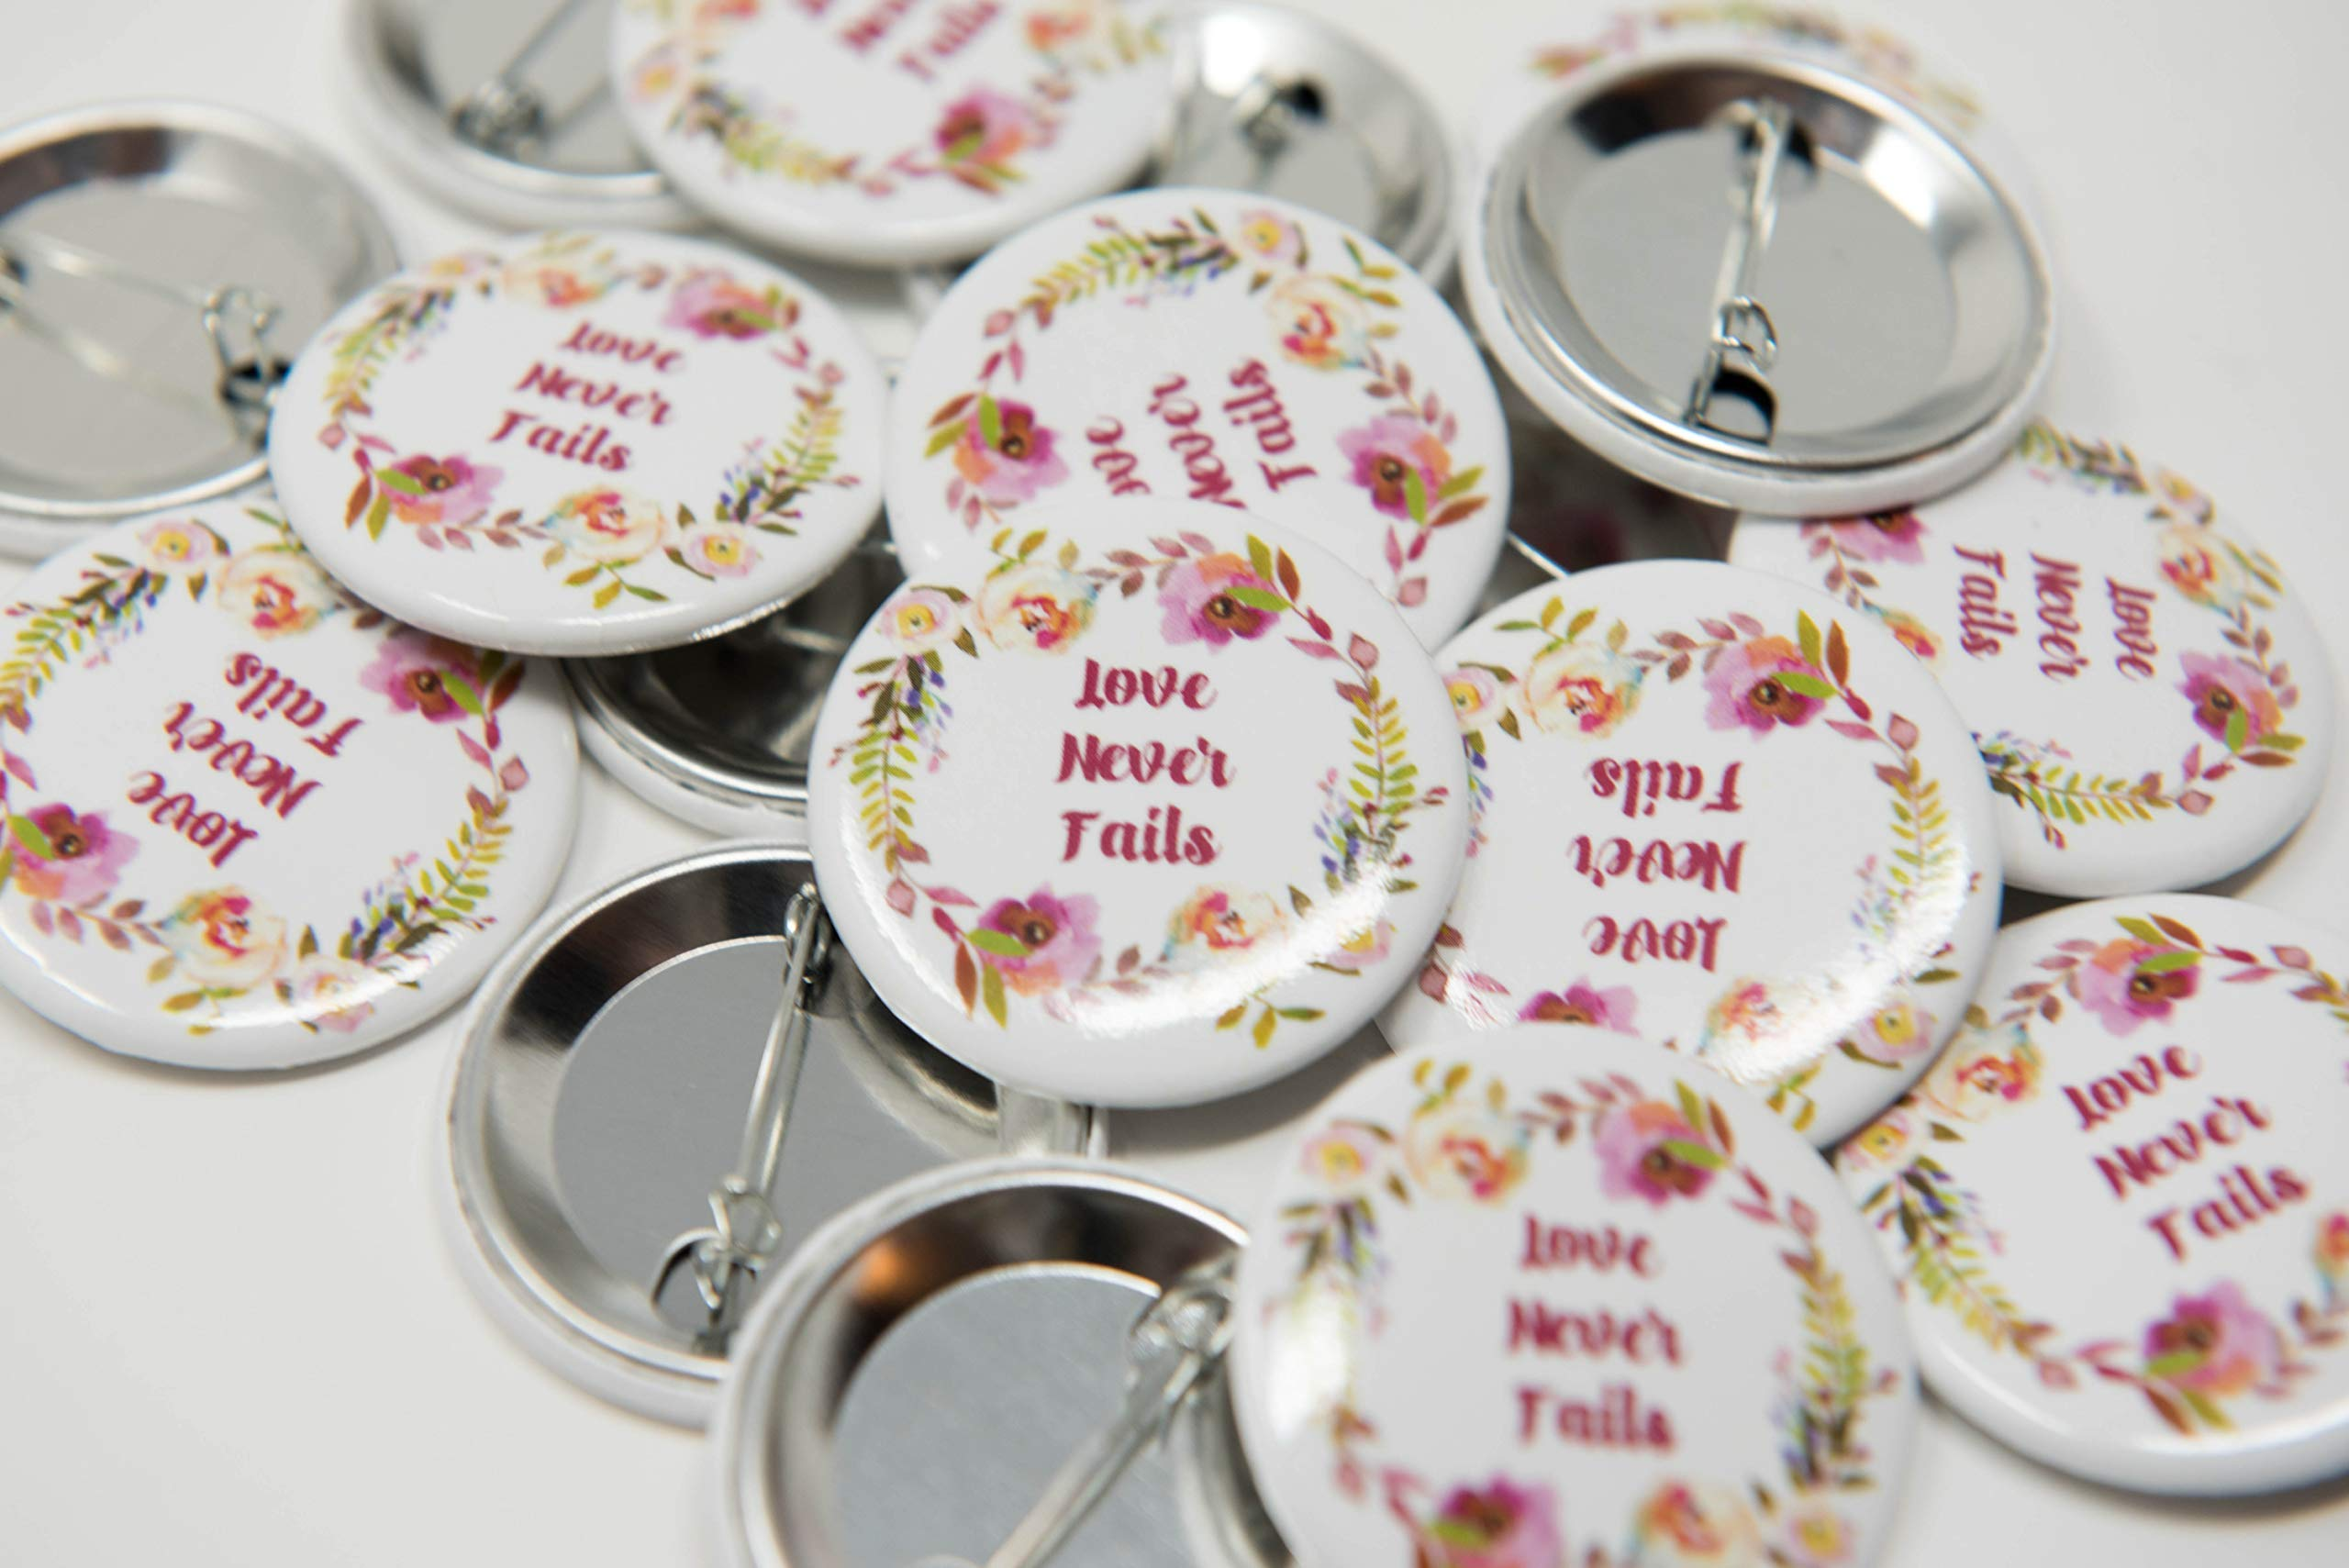 ENGLISH - 200 Lapel Buttons Pins - Love Never Fails International  Convention of Jehovah's Witnesses 2019, Jw gifts, Jw shop, souvenirs,  assembly gifts